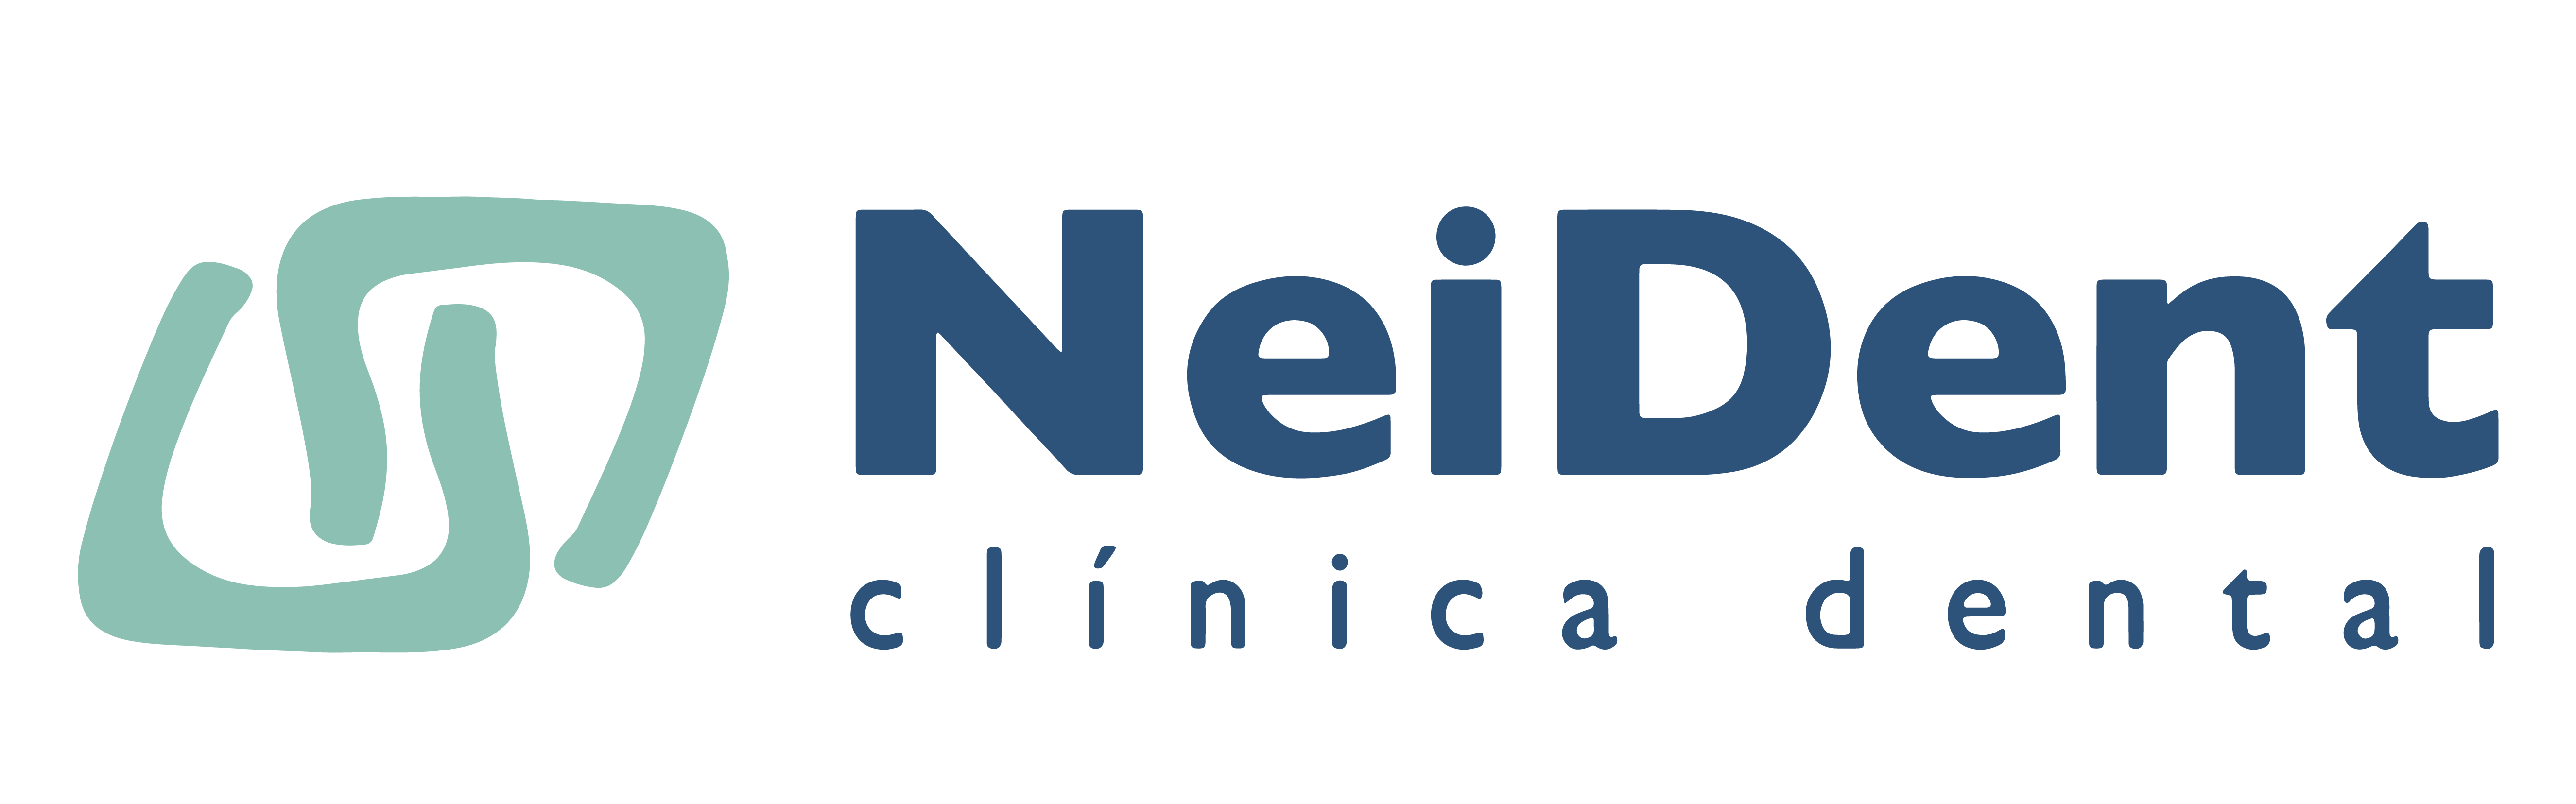 clinica dental en queretaro